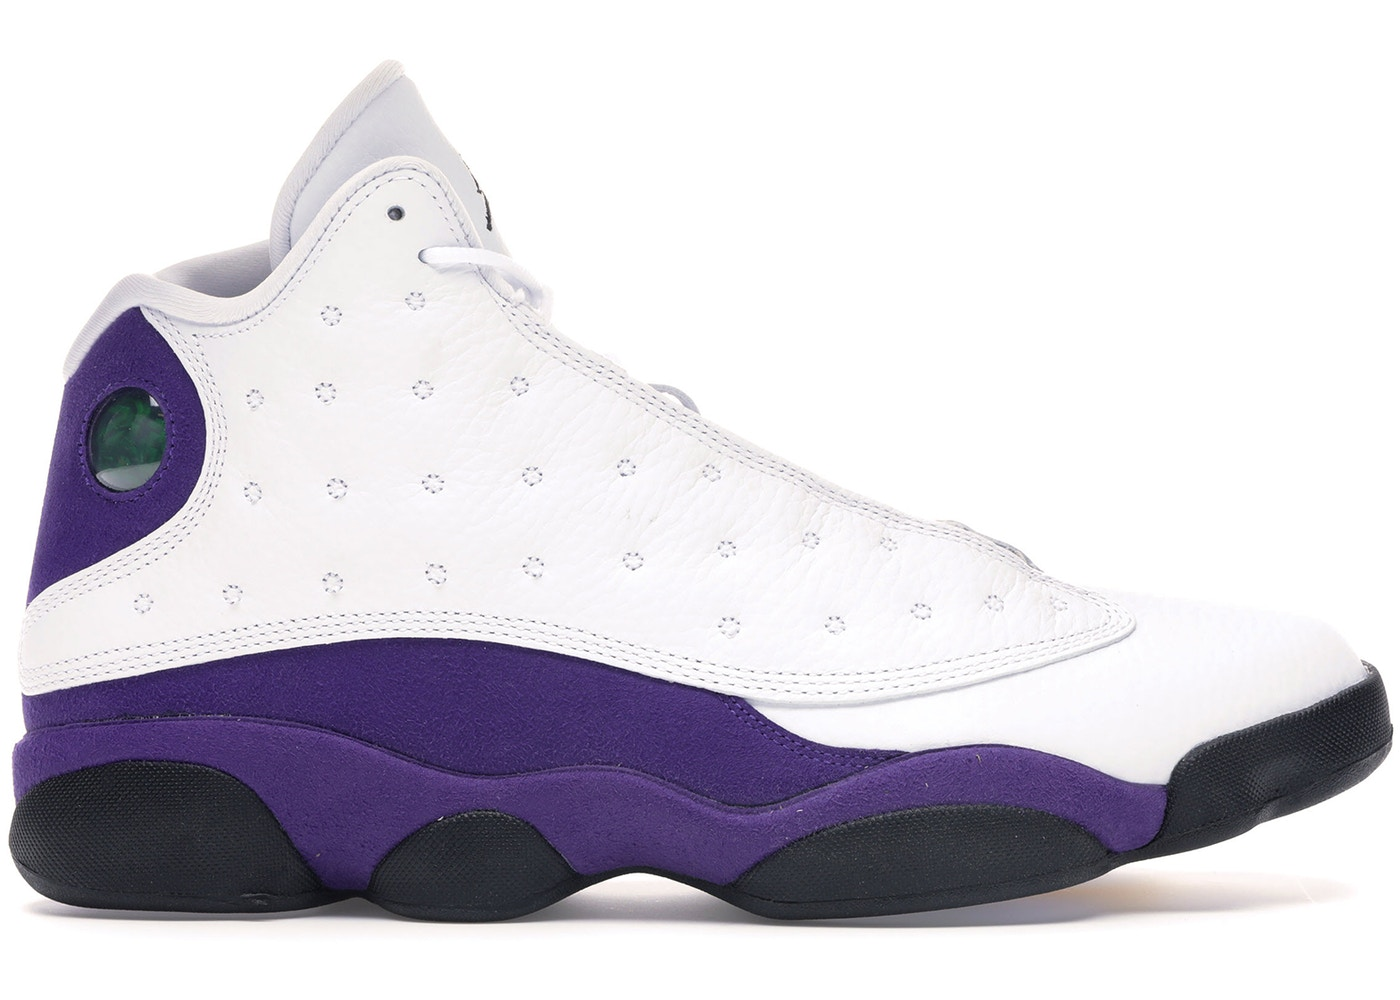 official photos 1fb16 08e87 Jordan 13 Retro Lakers